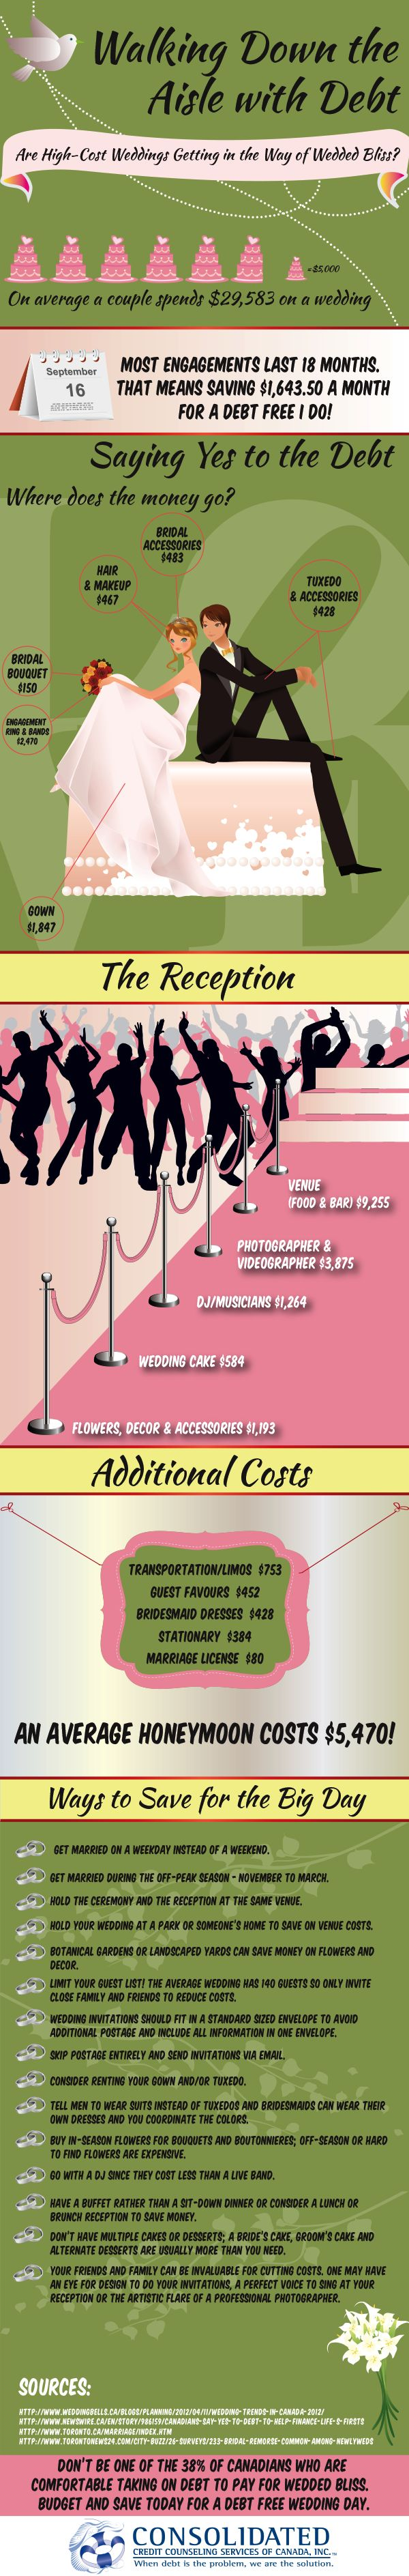 Wedding Cost Infographic Now Im all